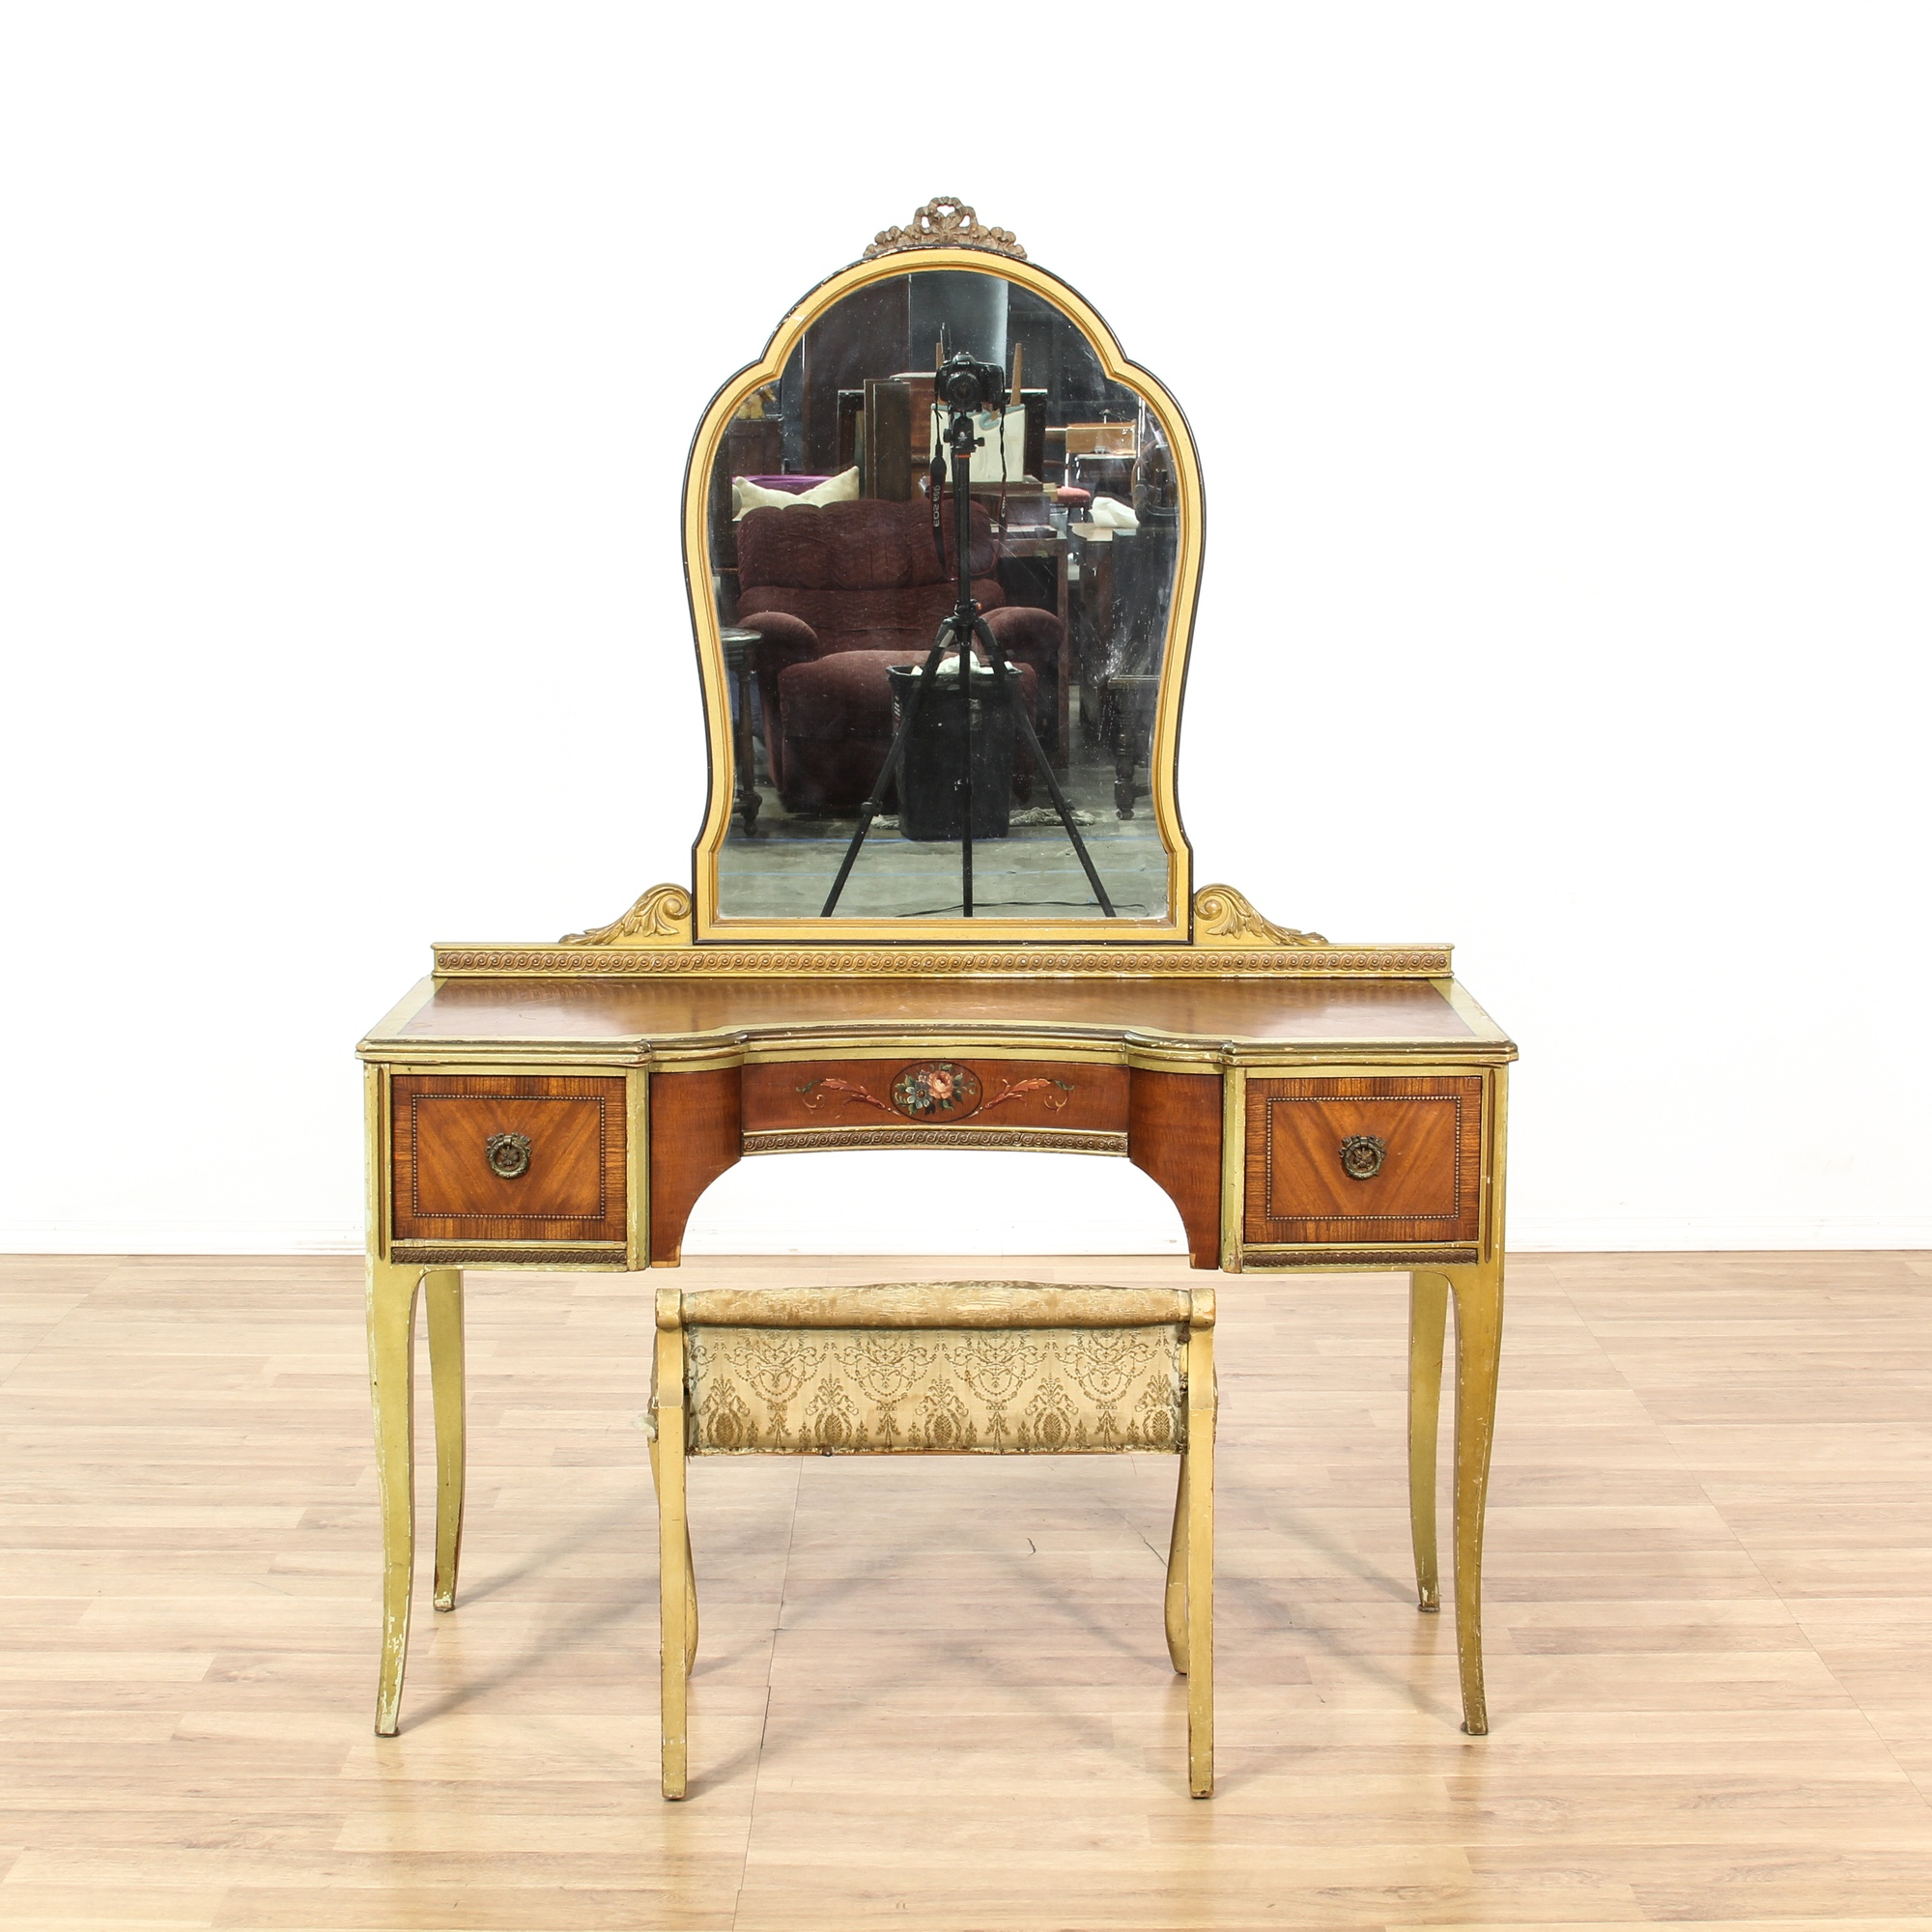 dating paine furniture Twenties furniture and home furnishings including range of clocks, solid oak roll top desk, player piano, full size wind up phonograph, chemical closet, queen anne.